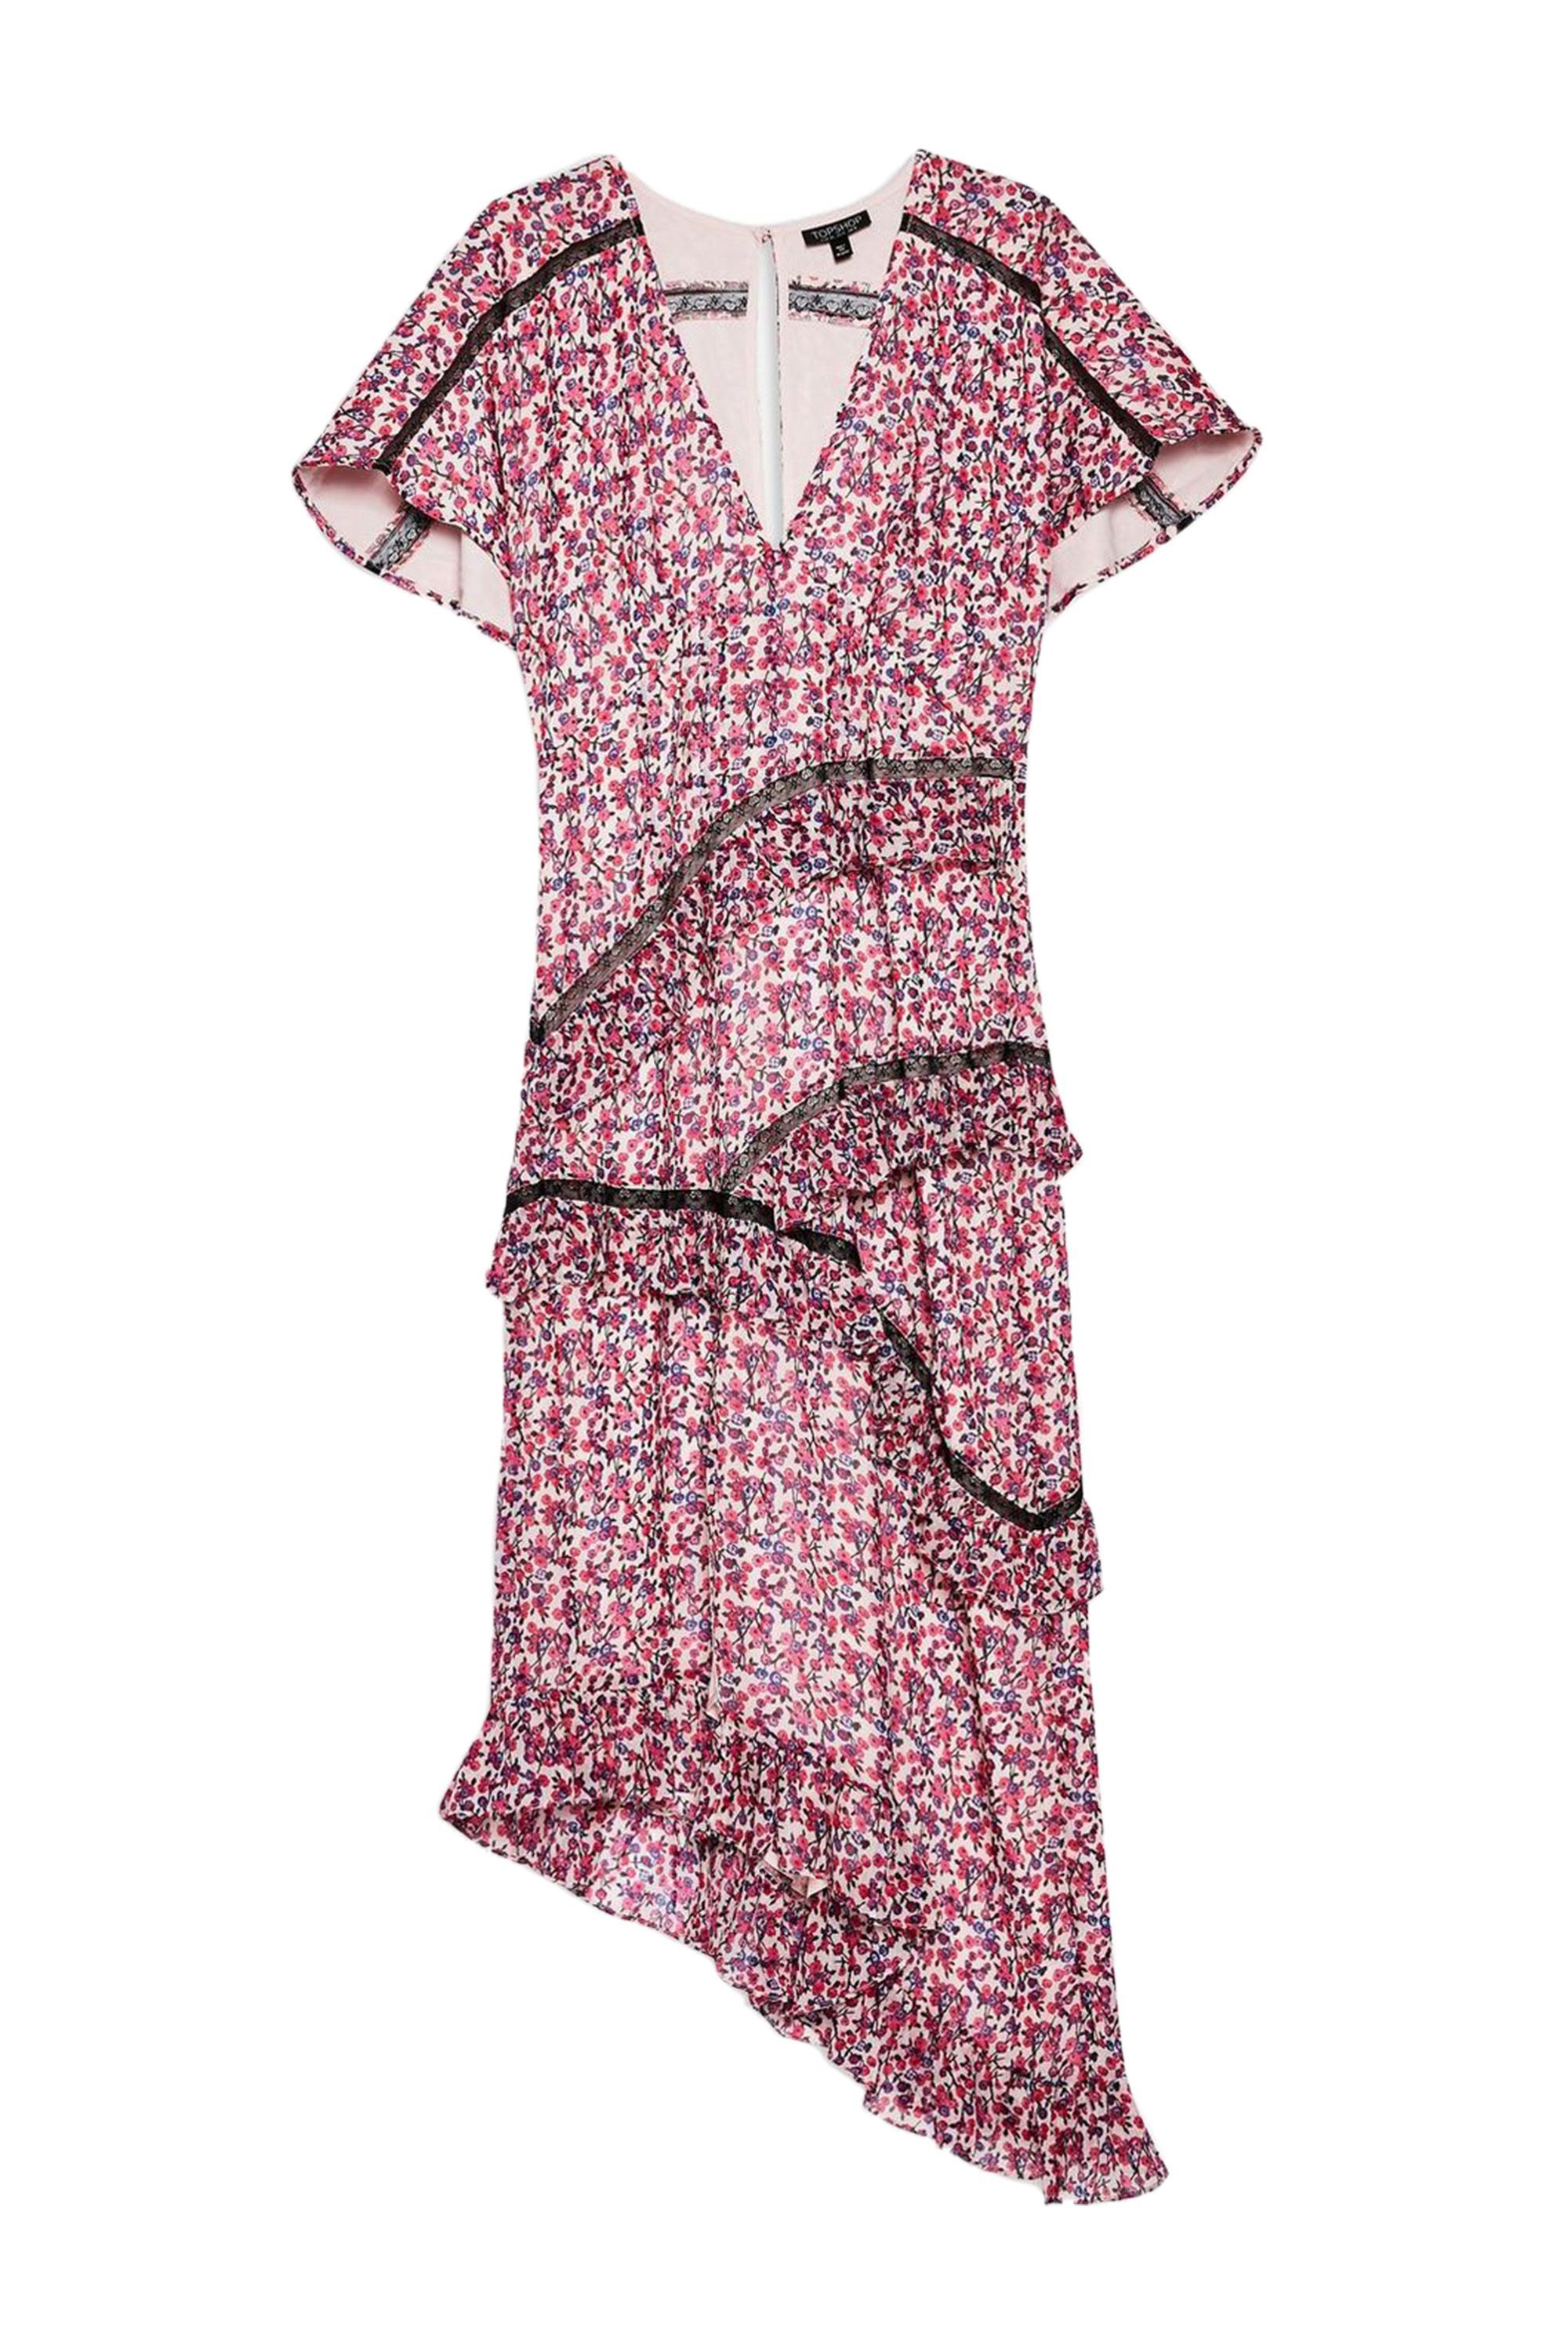 Ditsy Cluster Midi Dress Topshop topshop.com $100.00 SHOP NOW This one is a step up from your usual spring dress.